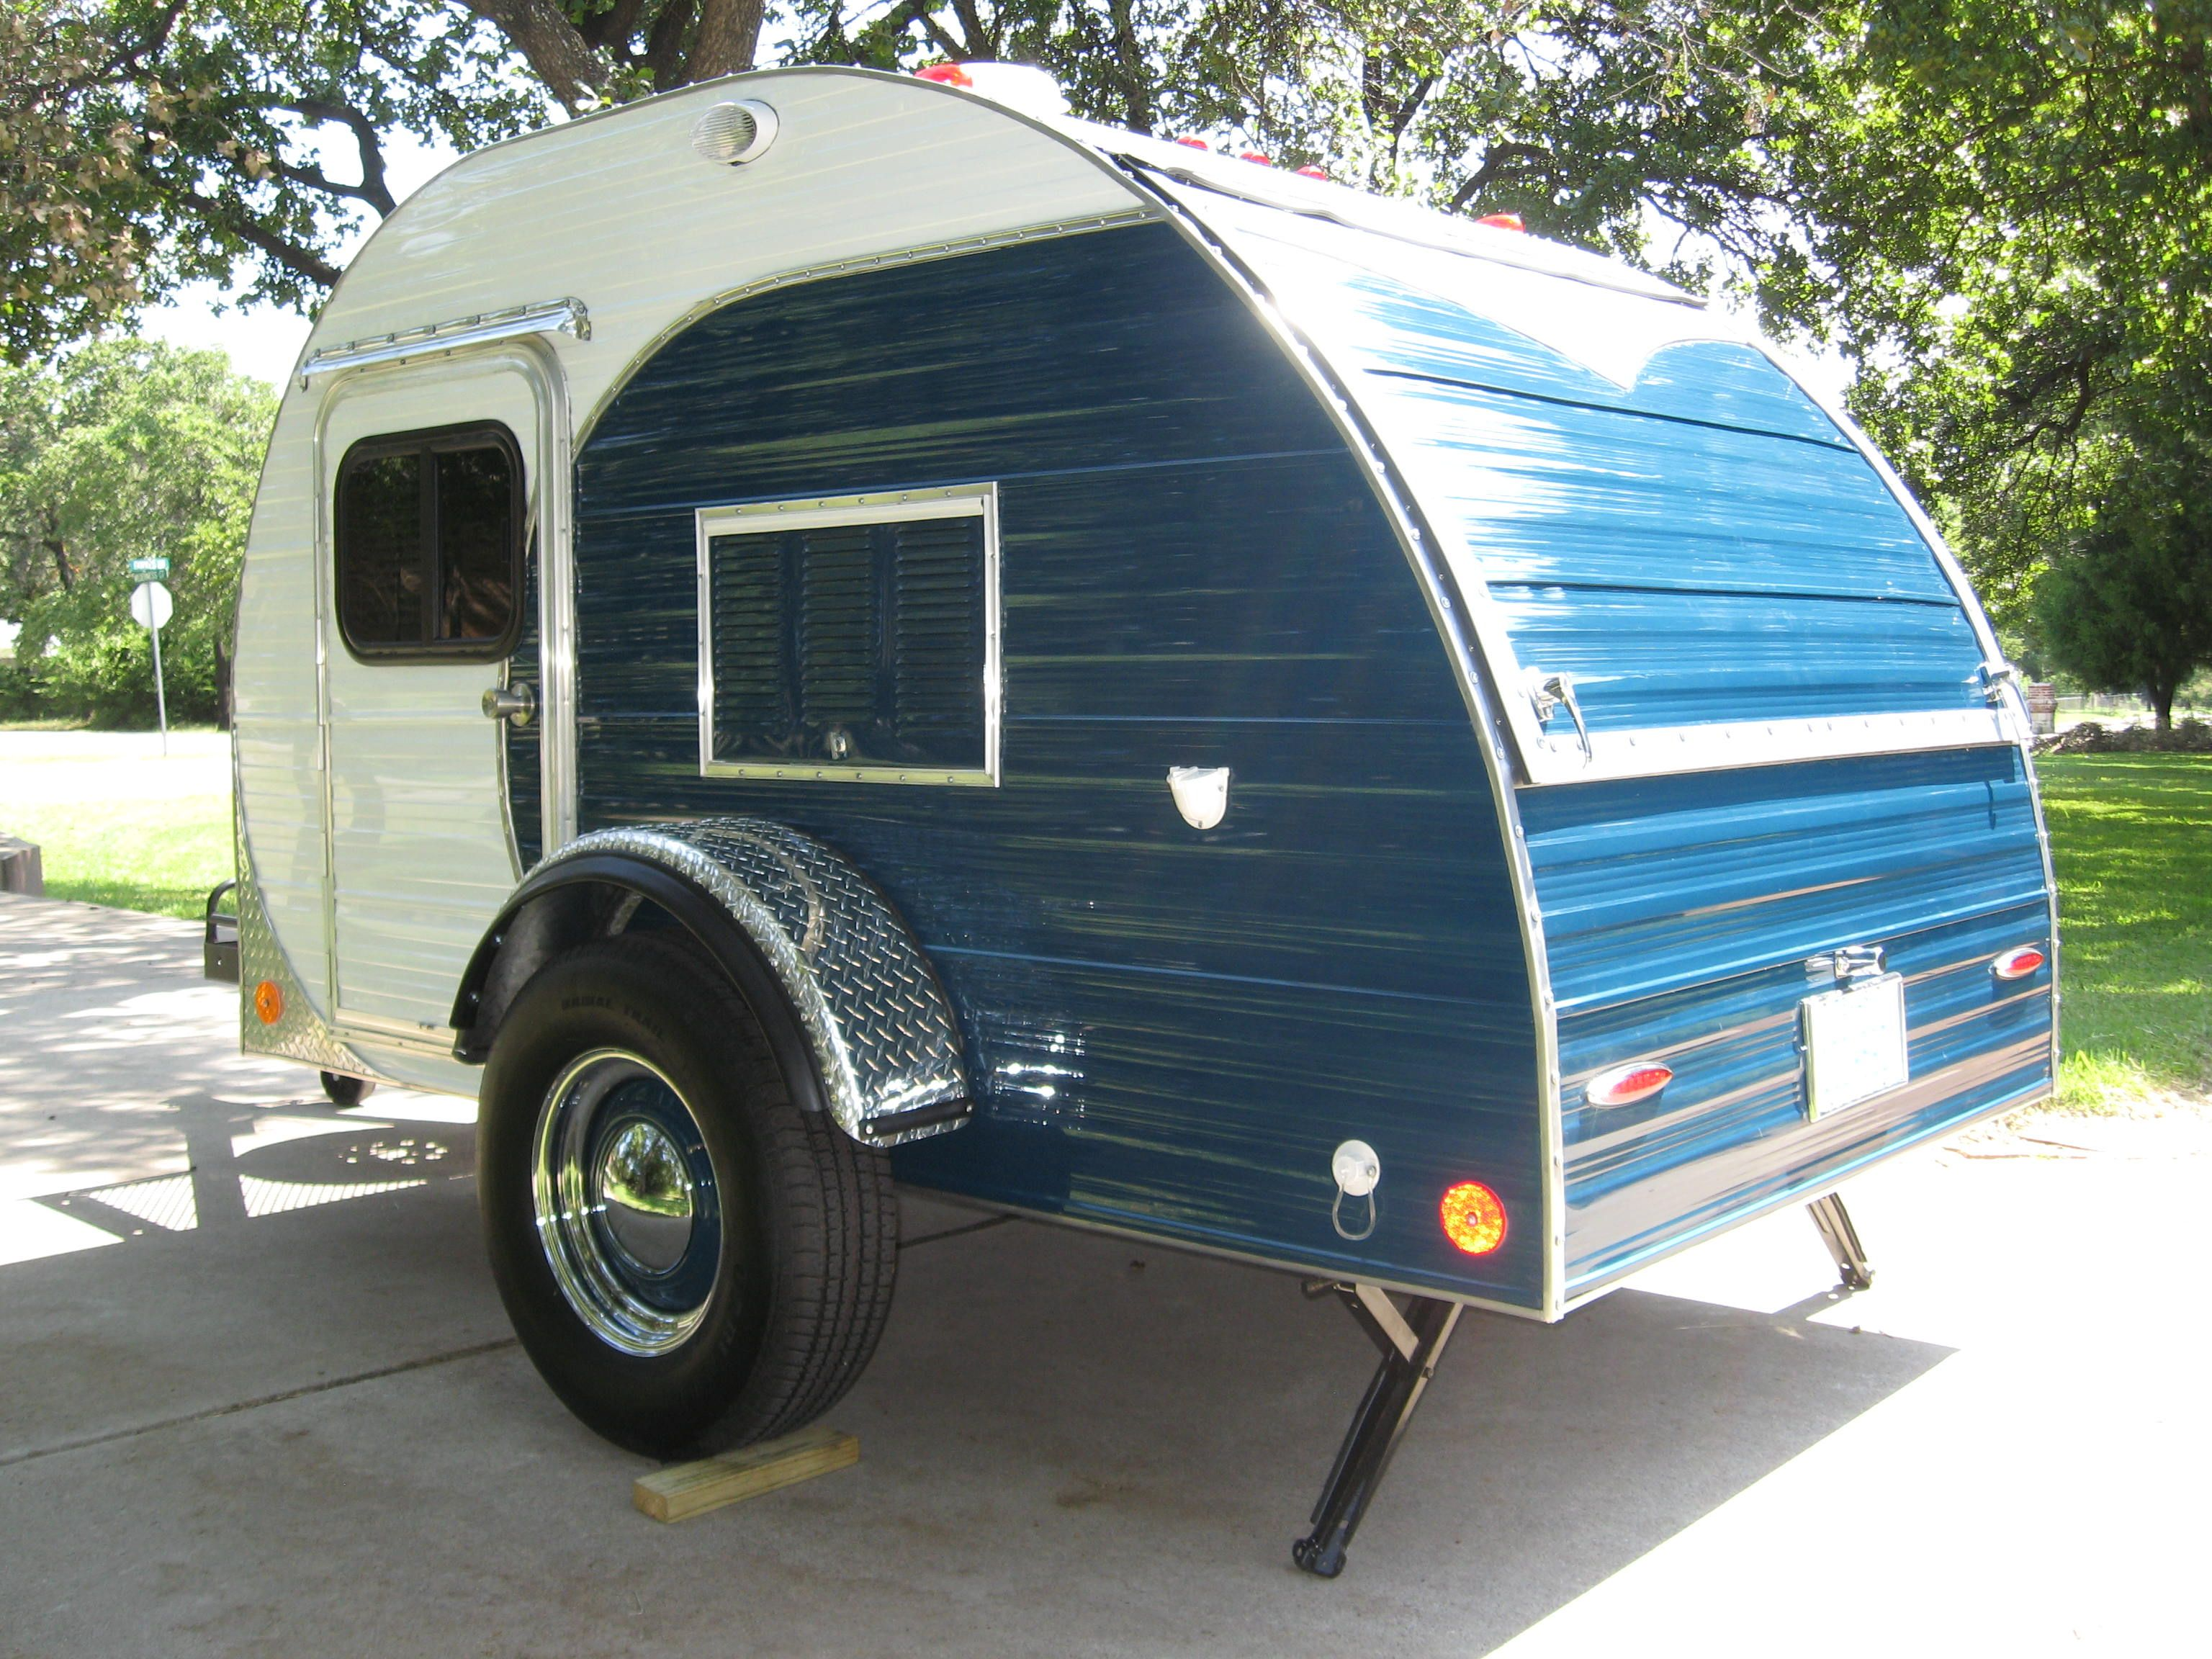 teardrop camper Google Search Teardrop Camper Pinterest